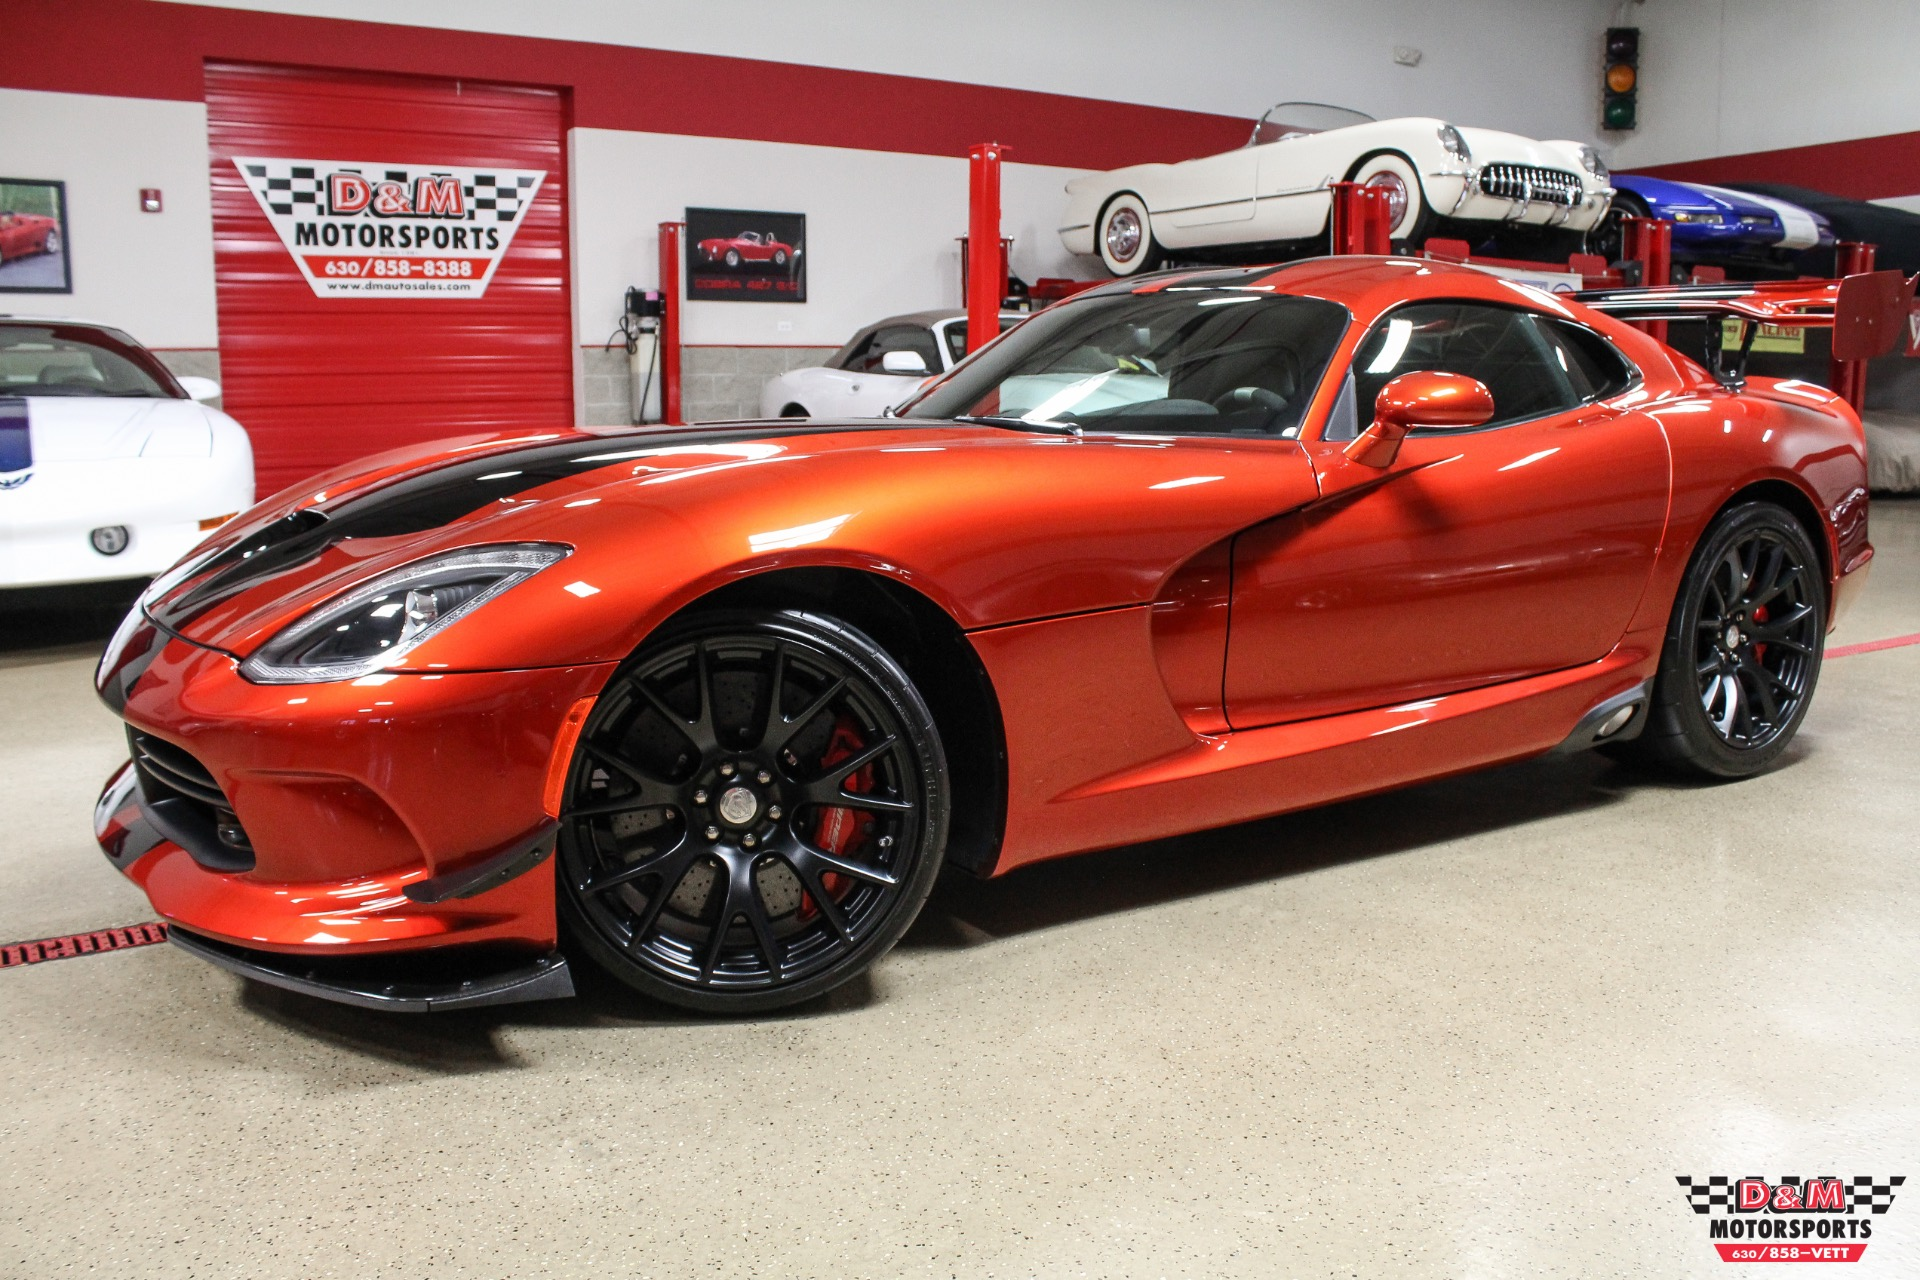 2016 Dodge Viper ACR Stock M6591 for sale near Glen Ellyn IL